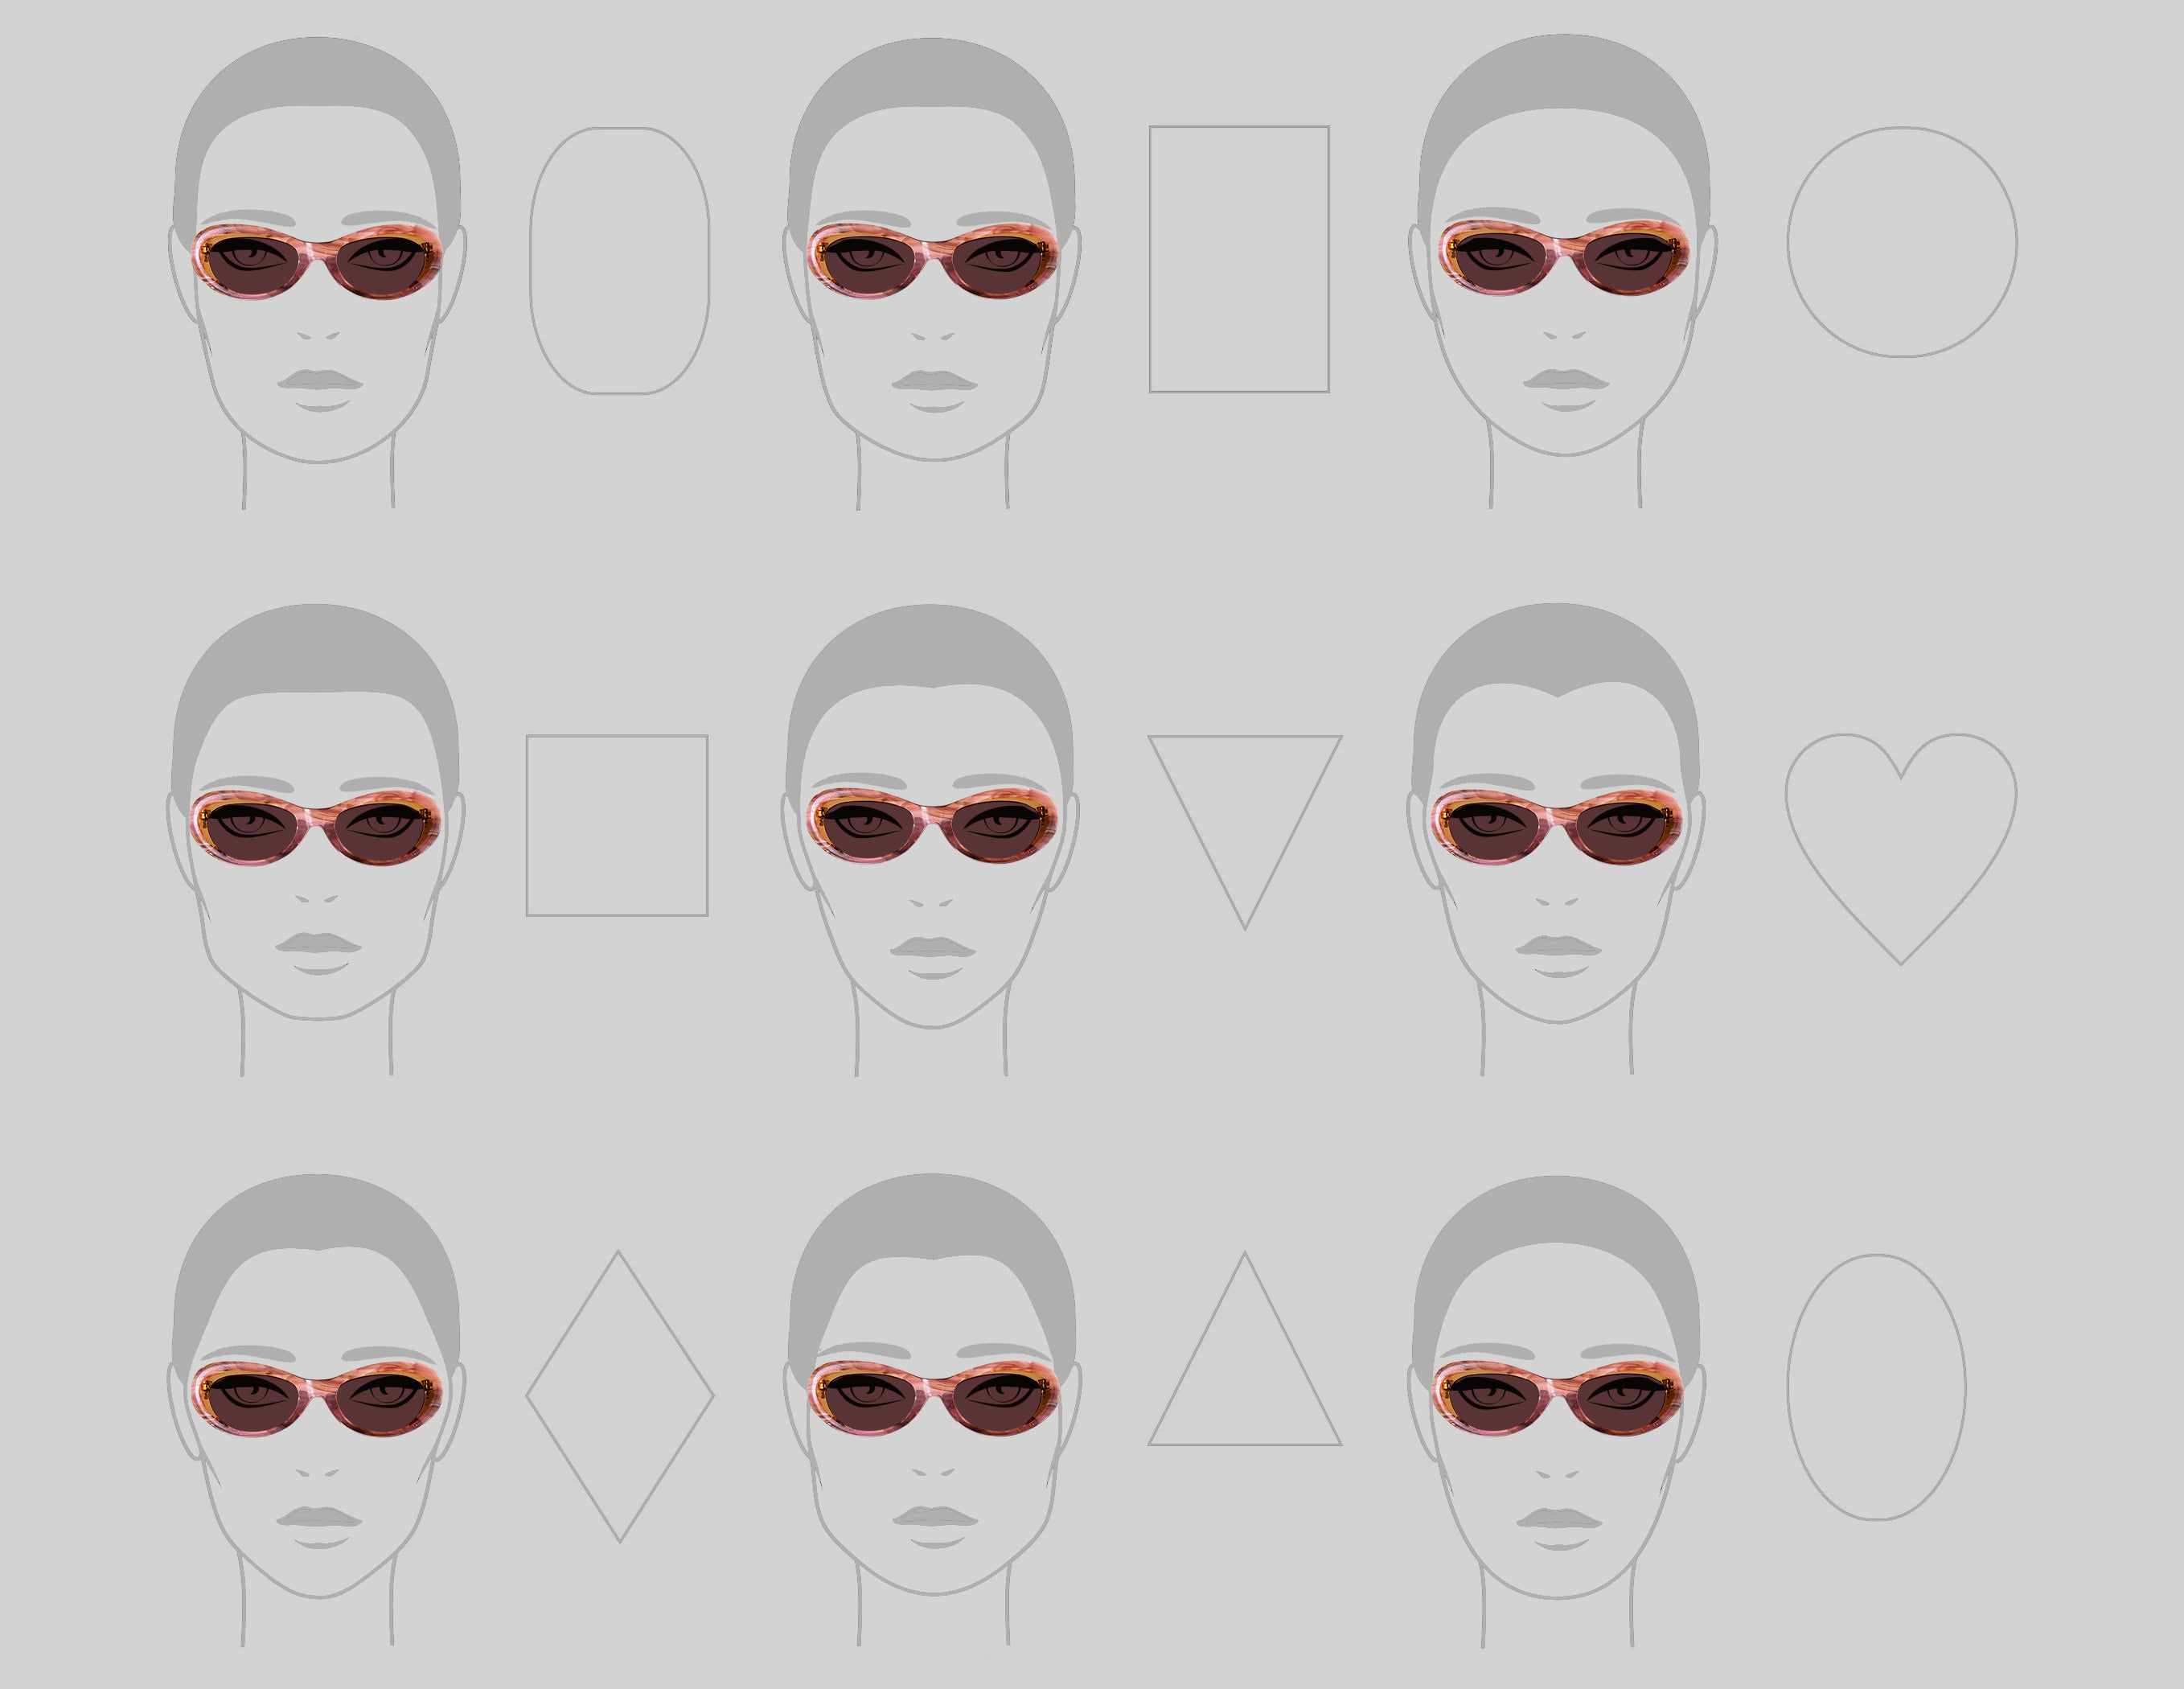 sunglasses, face shapes, sunglasses style guide, sunglasses face shape guide, cat eye sunglasses, pink sunglasses, tyche and iset, eyewear, designer eyewear, los angeles fashion, los angeles sunglasses